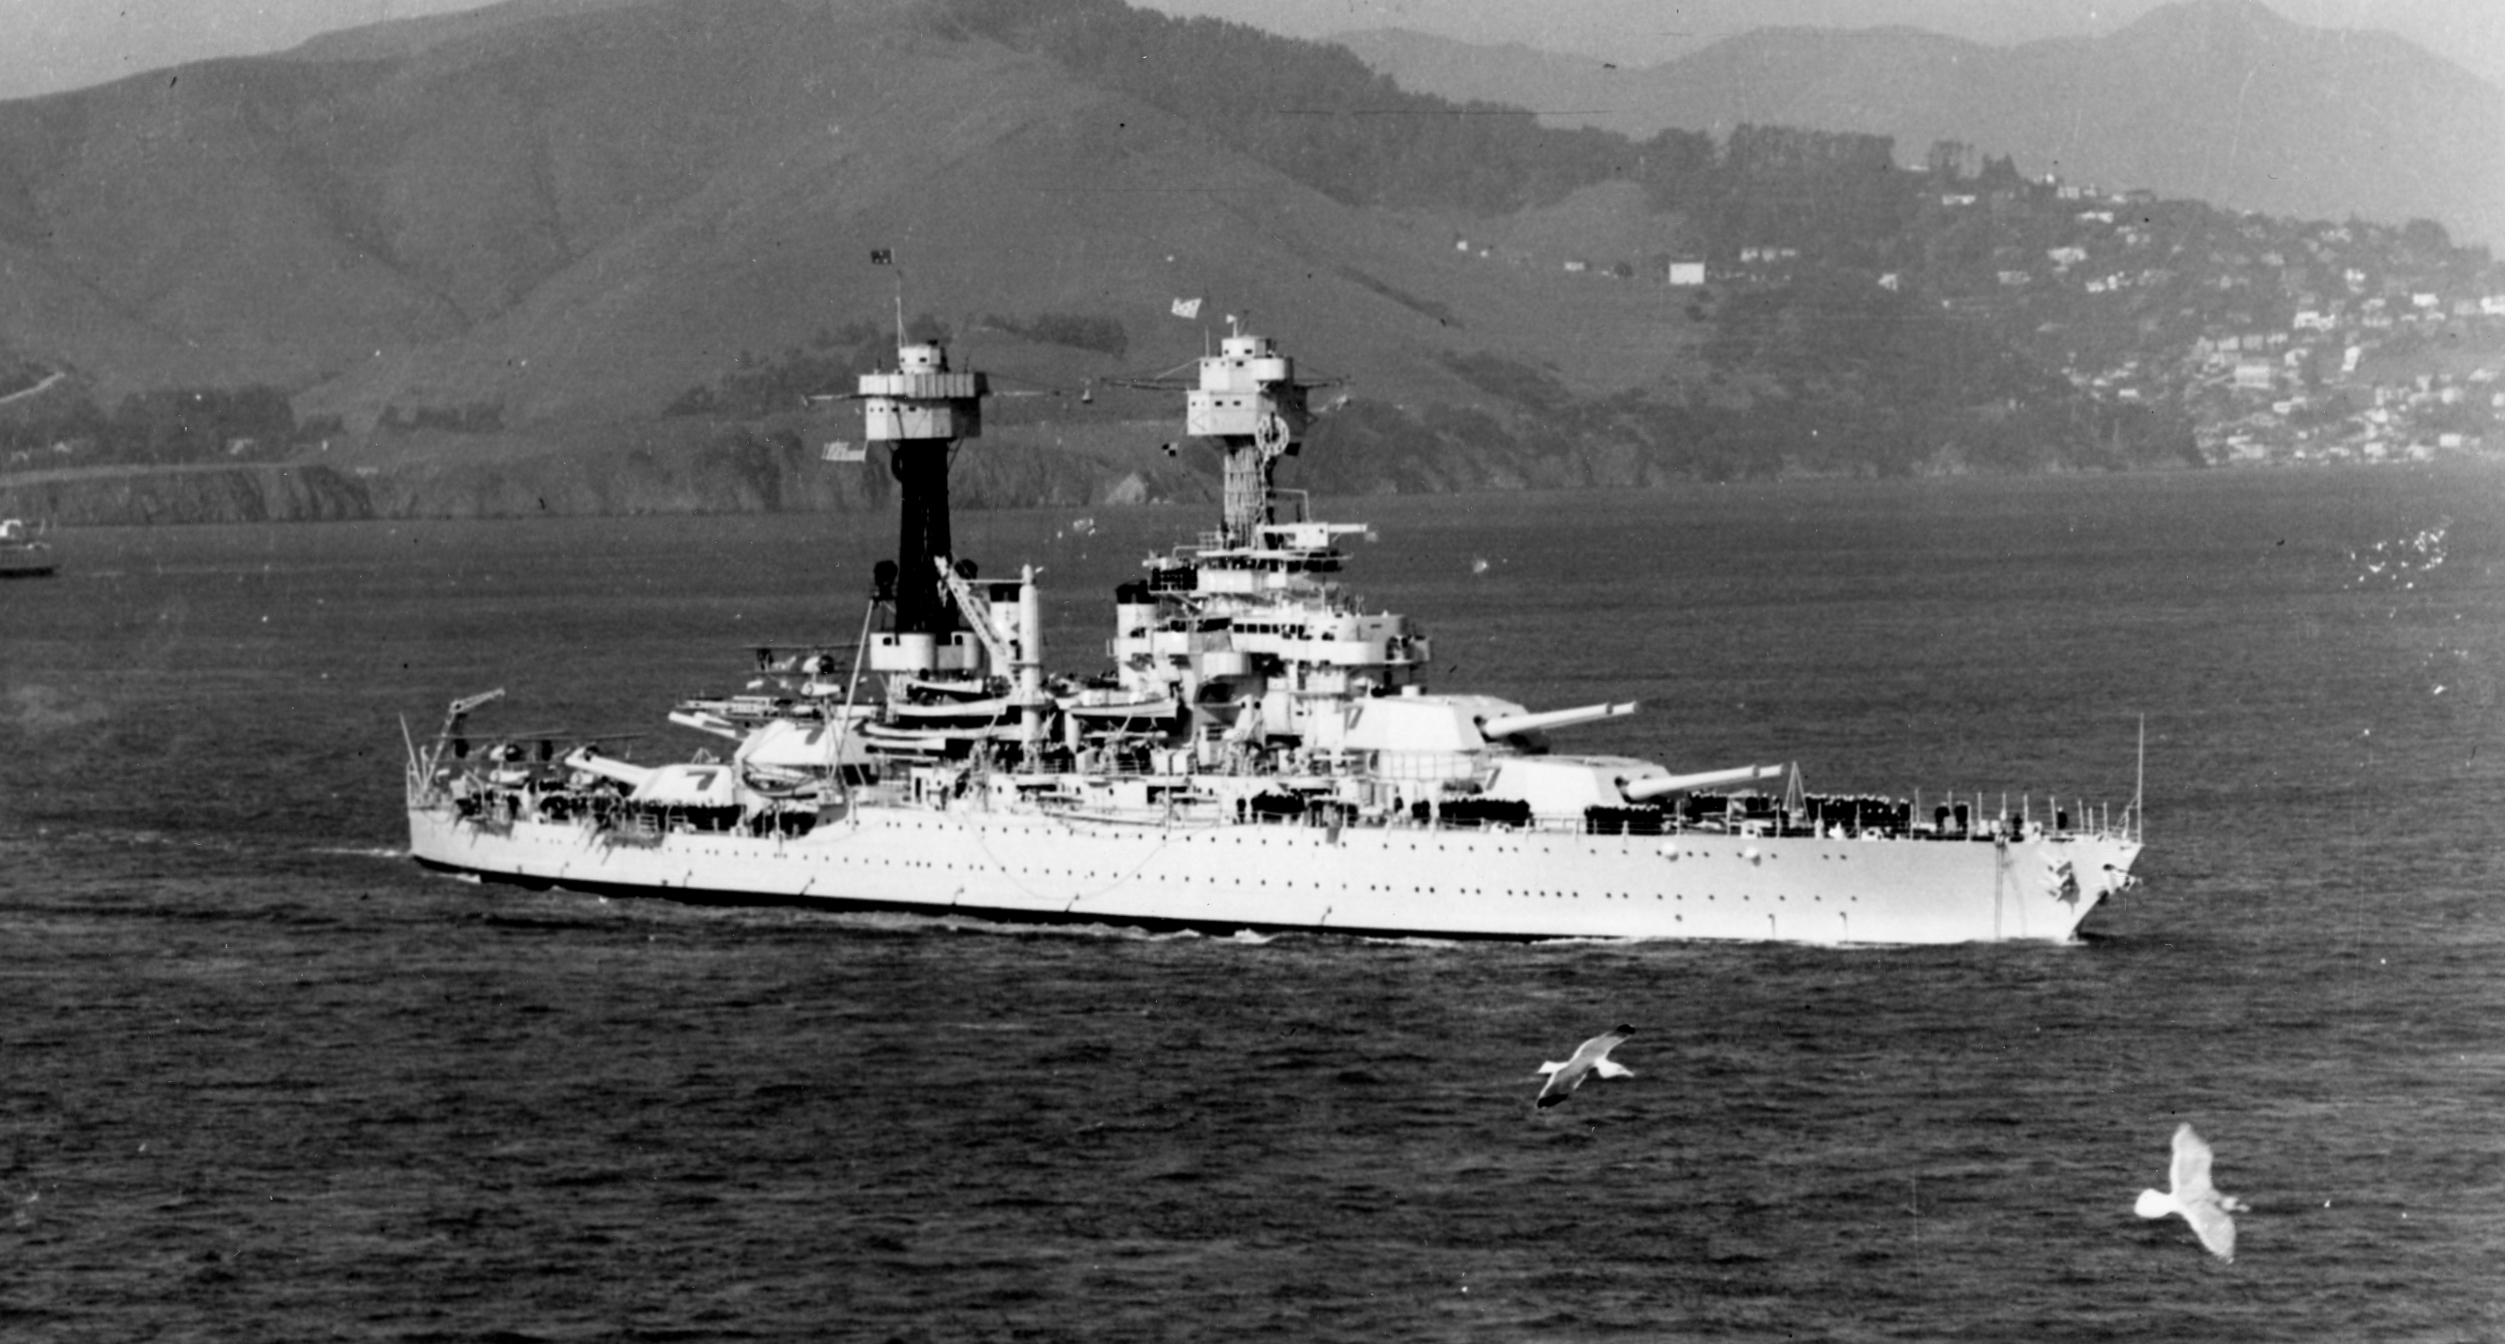 USS West Virginia (BB-48) in San Francisco Bay, c. 1934.